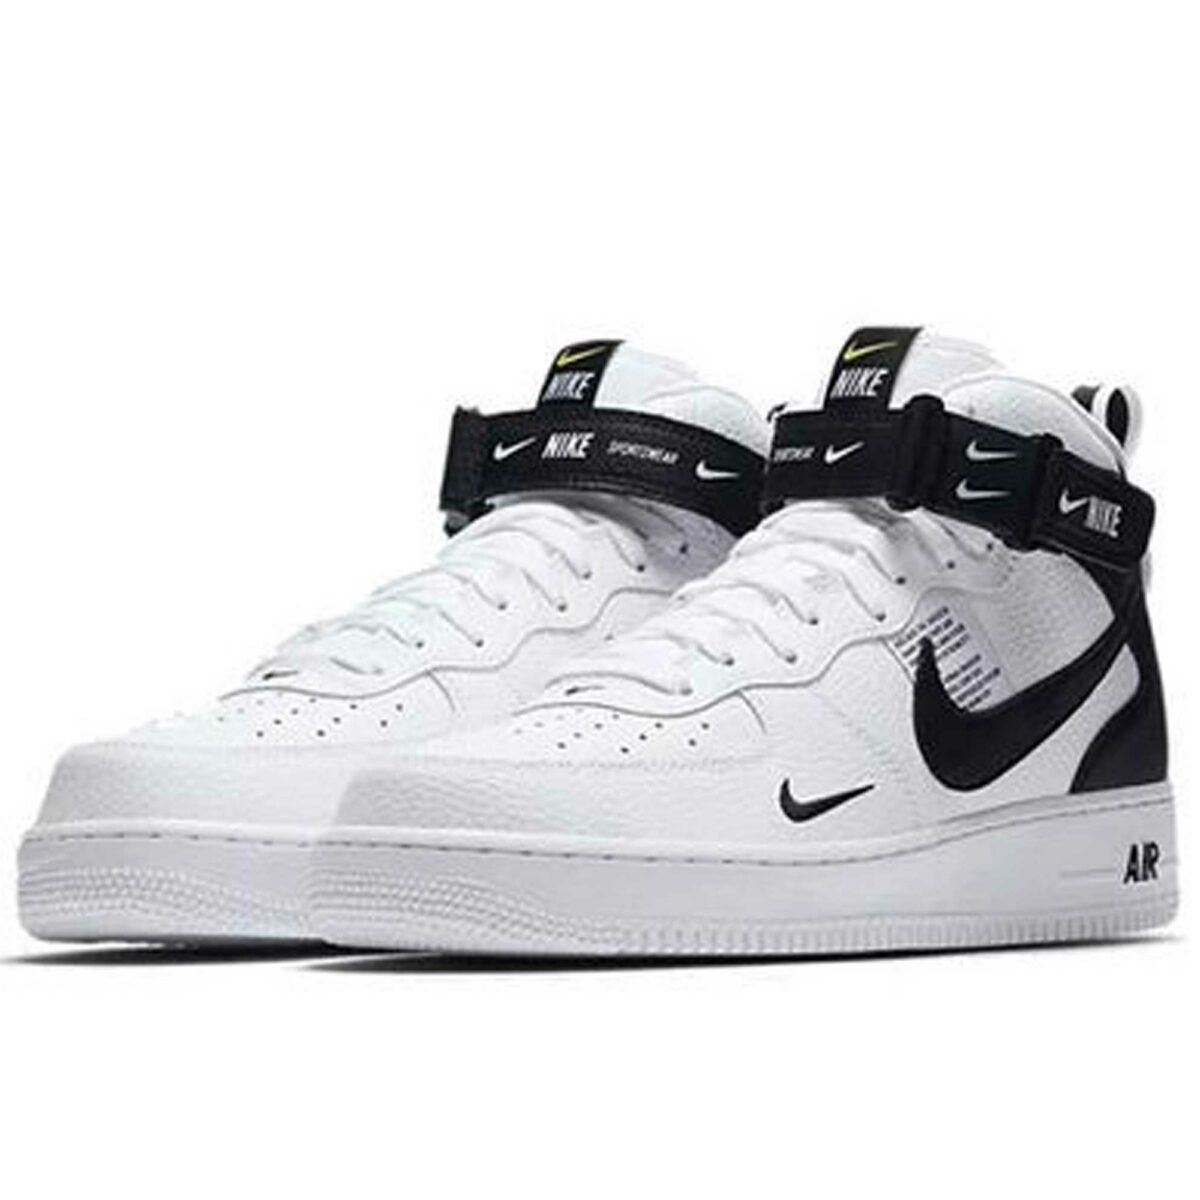 nike air force 1 mid 07 lv8 white black 804609_103 купить